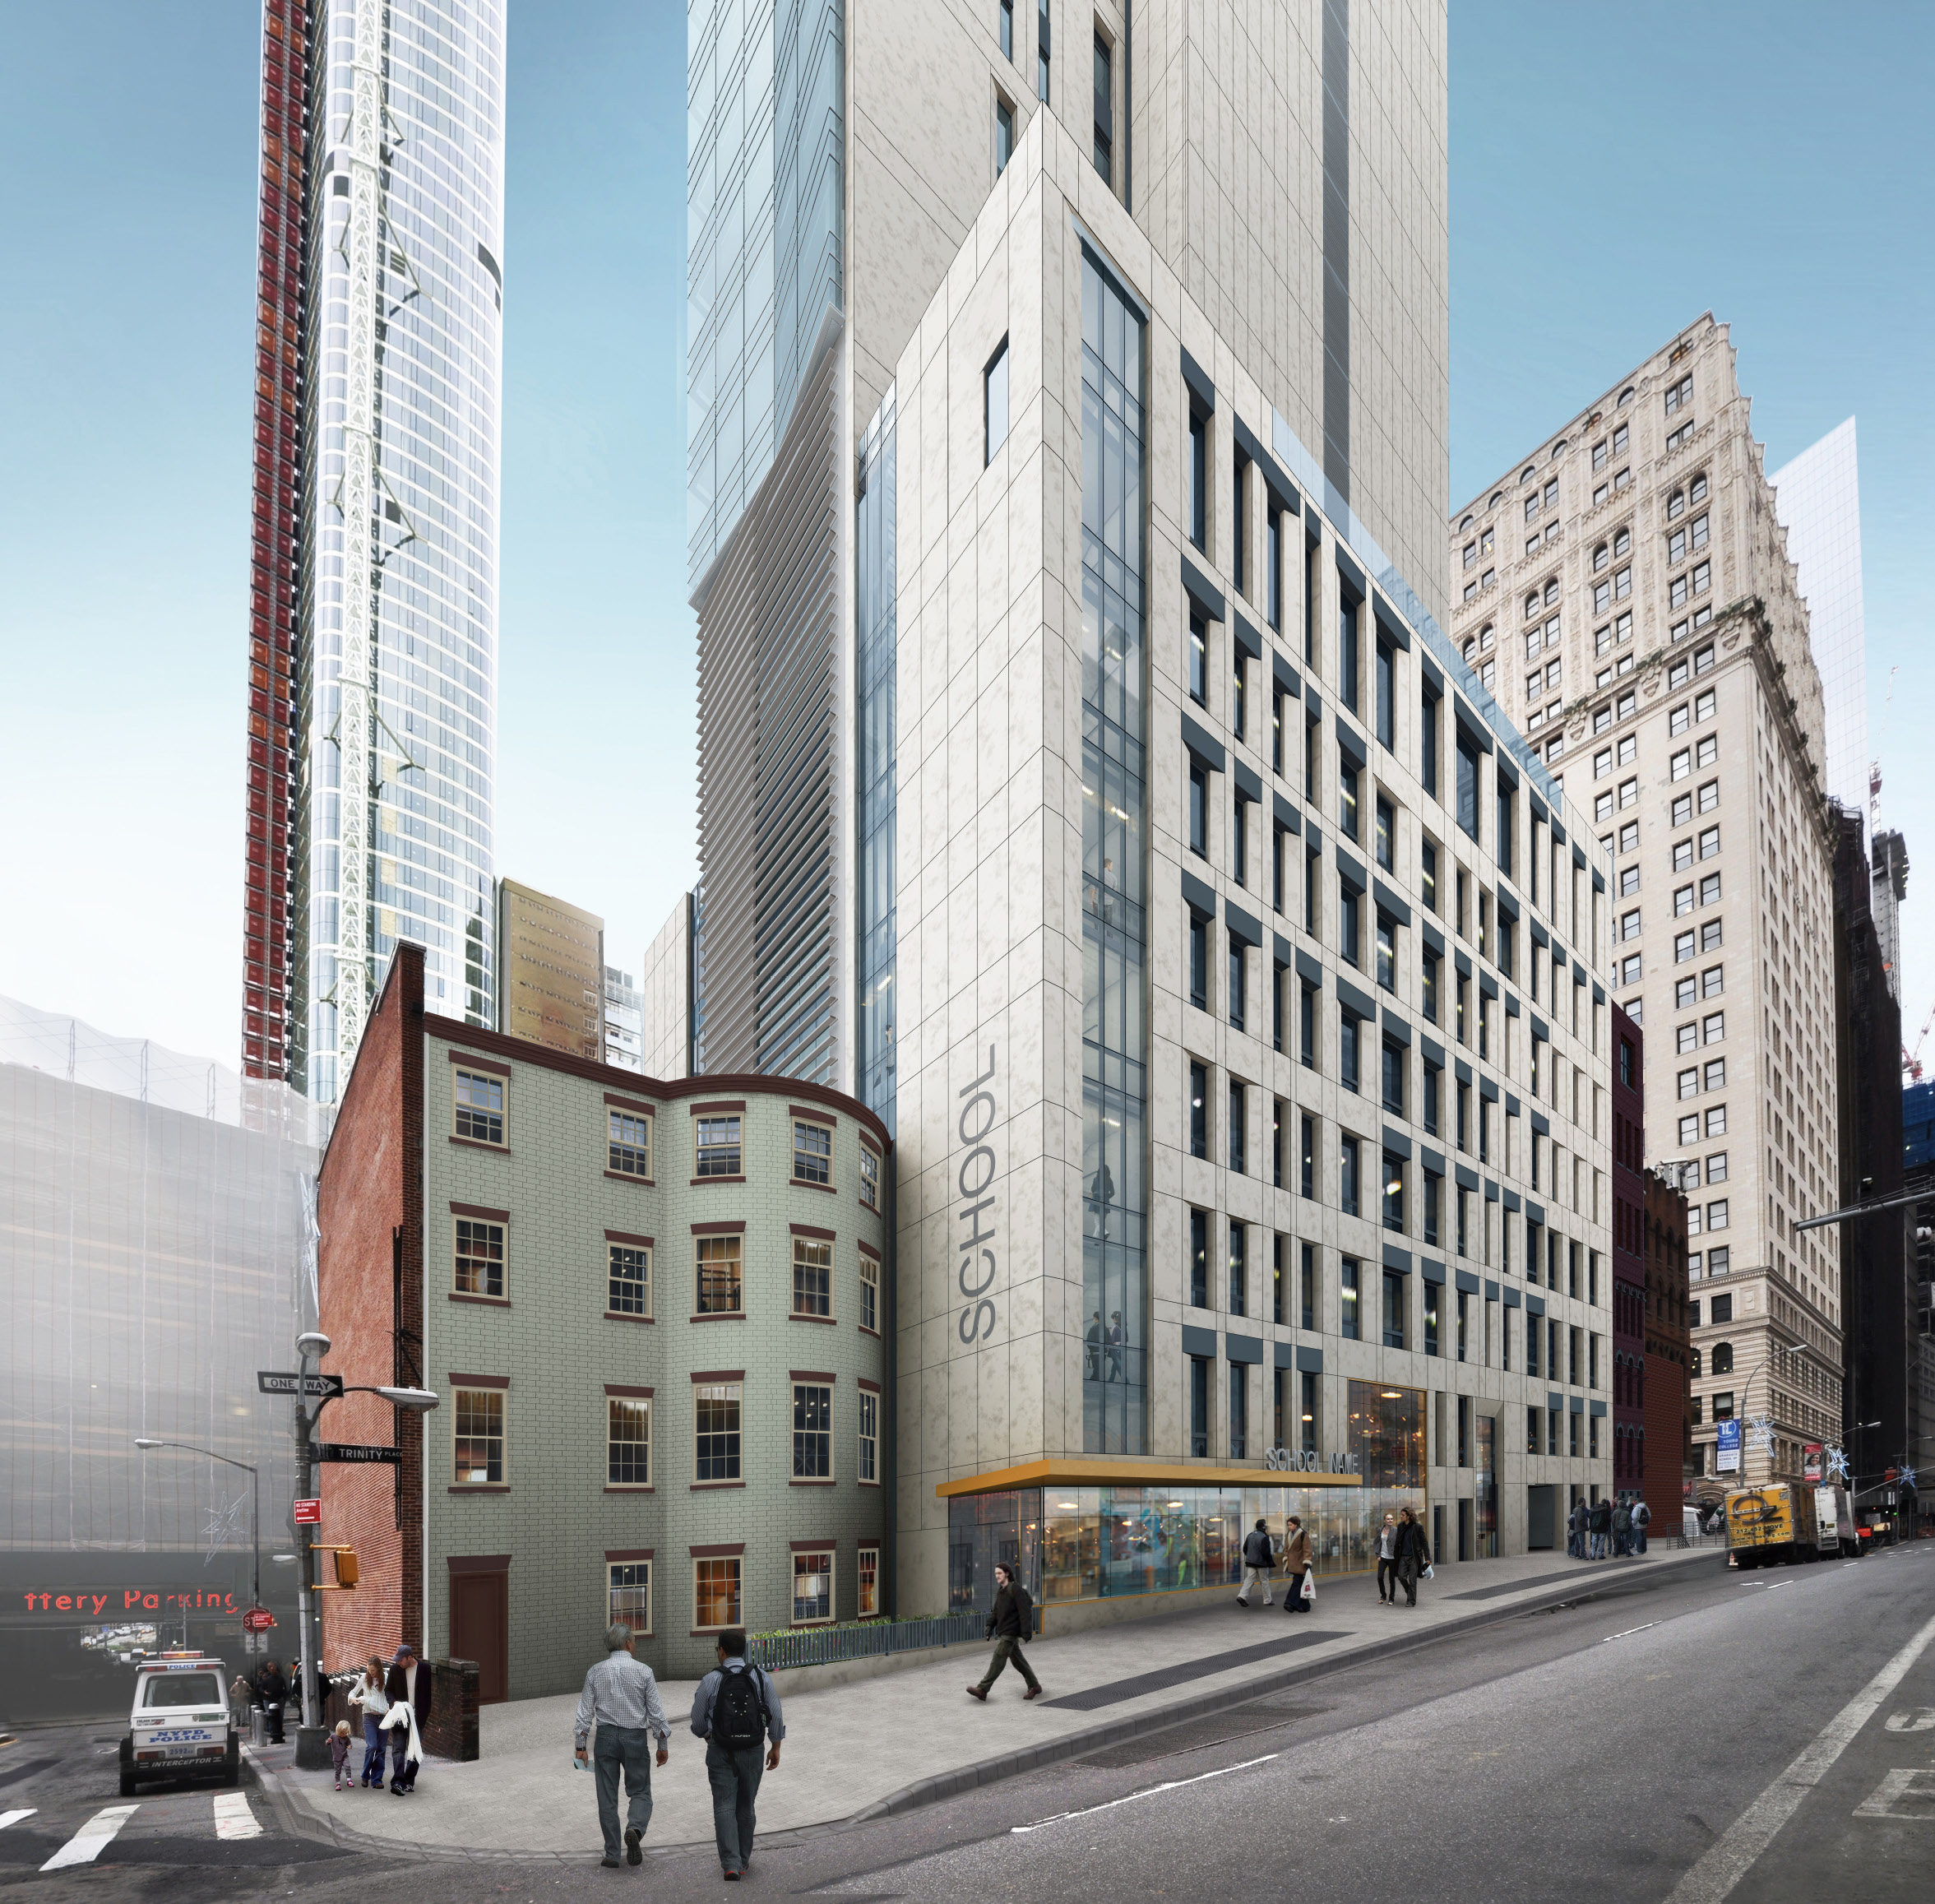 67 Greenwich Street and 77 Greenwich Street, revised design (without pylon)